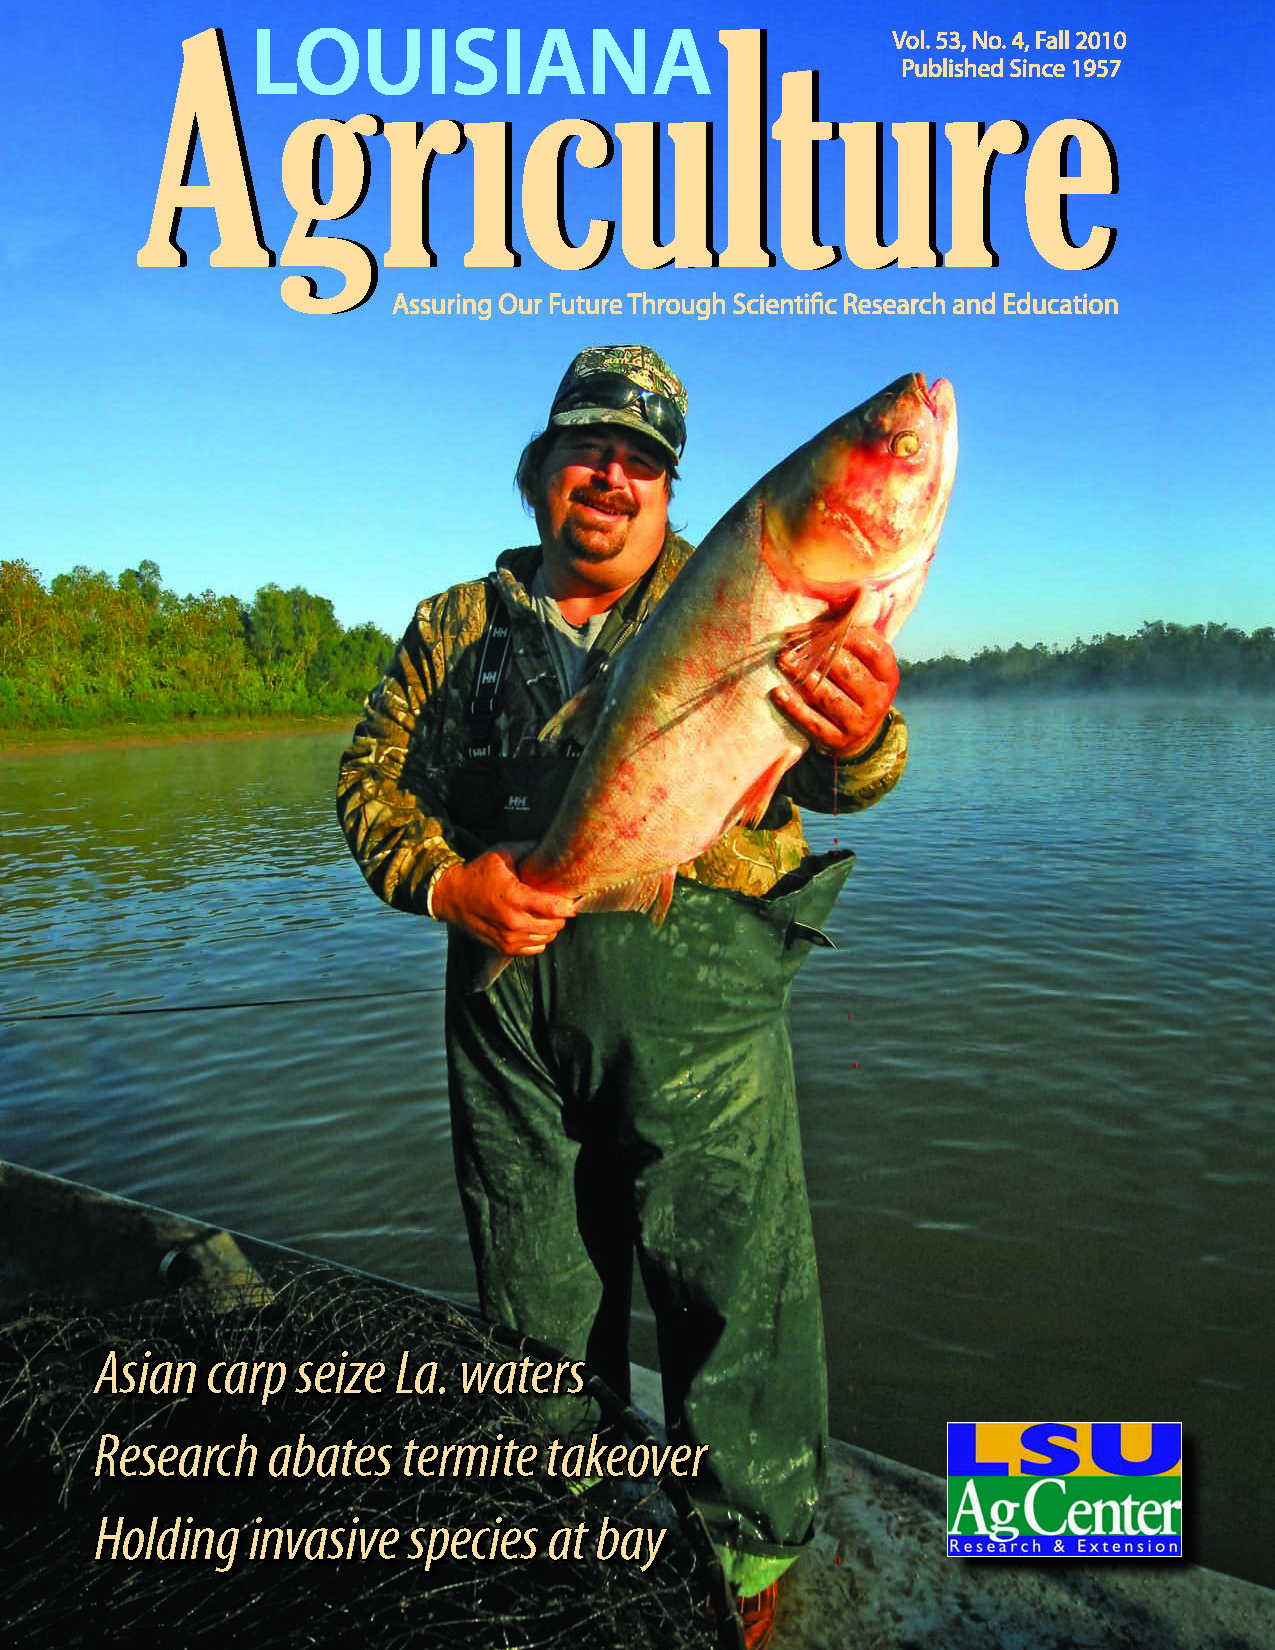 Louisiana Agriculture Magazine Fall 2010